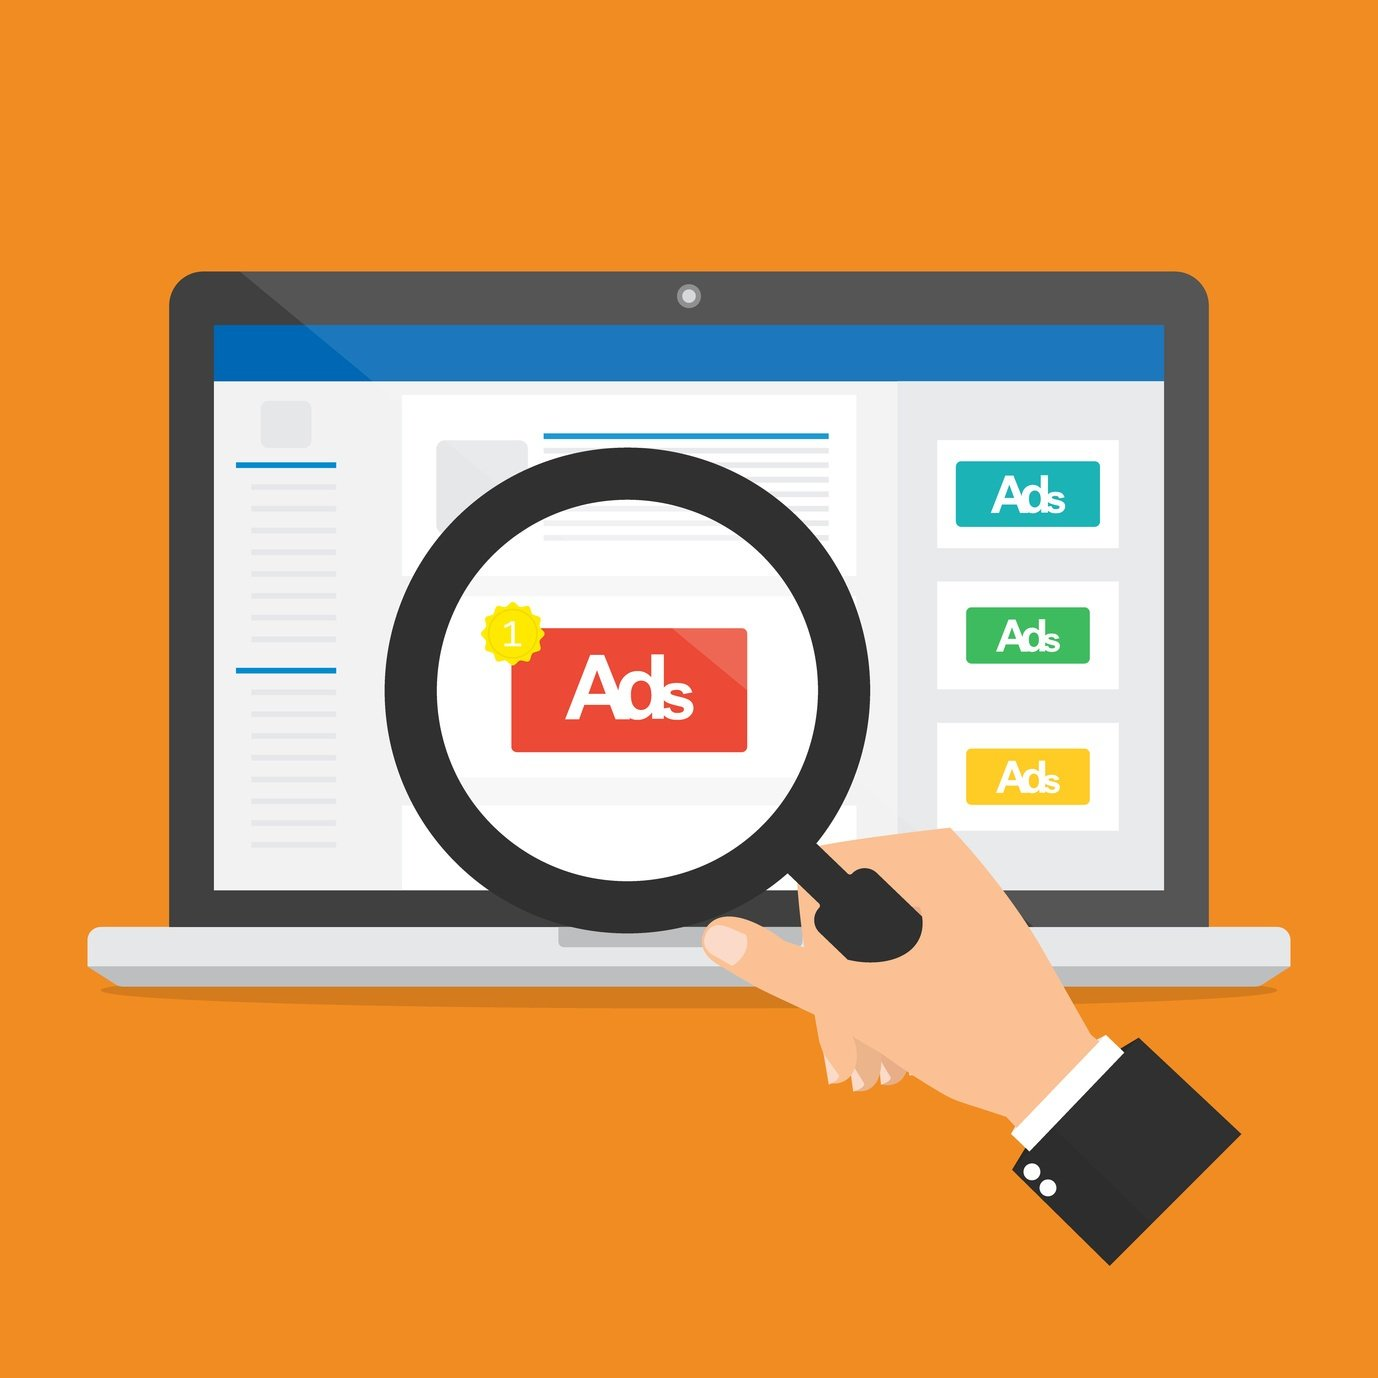 5 Great Ways to Advertise Online in 2018